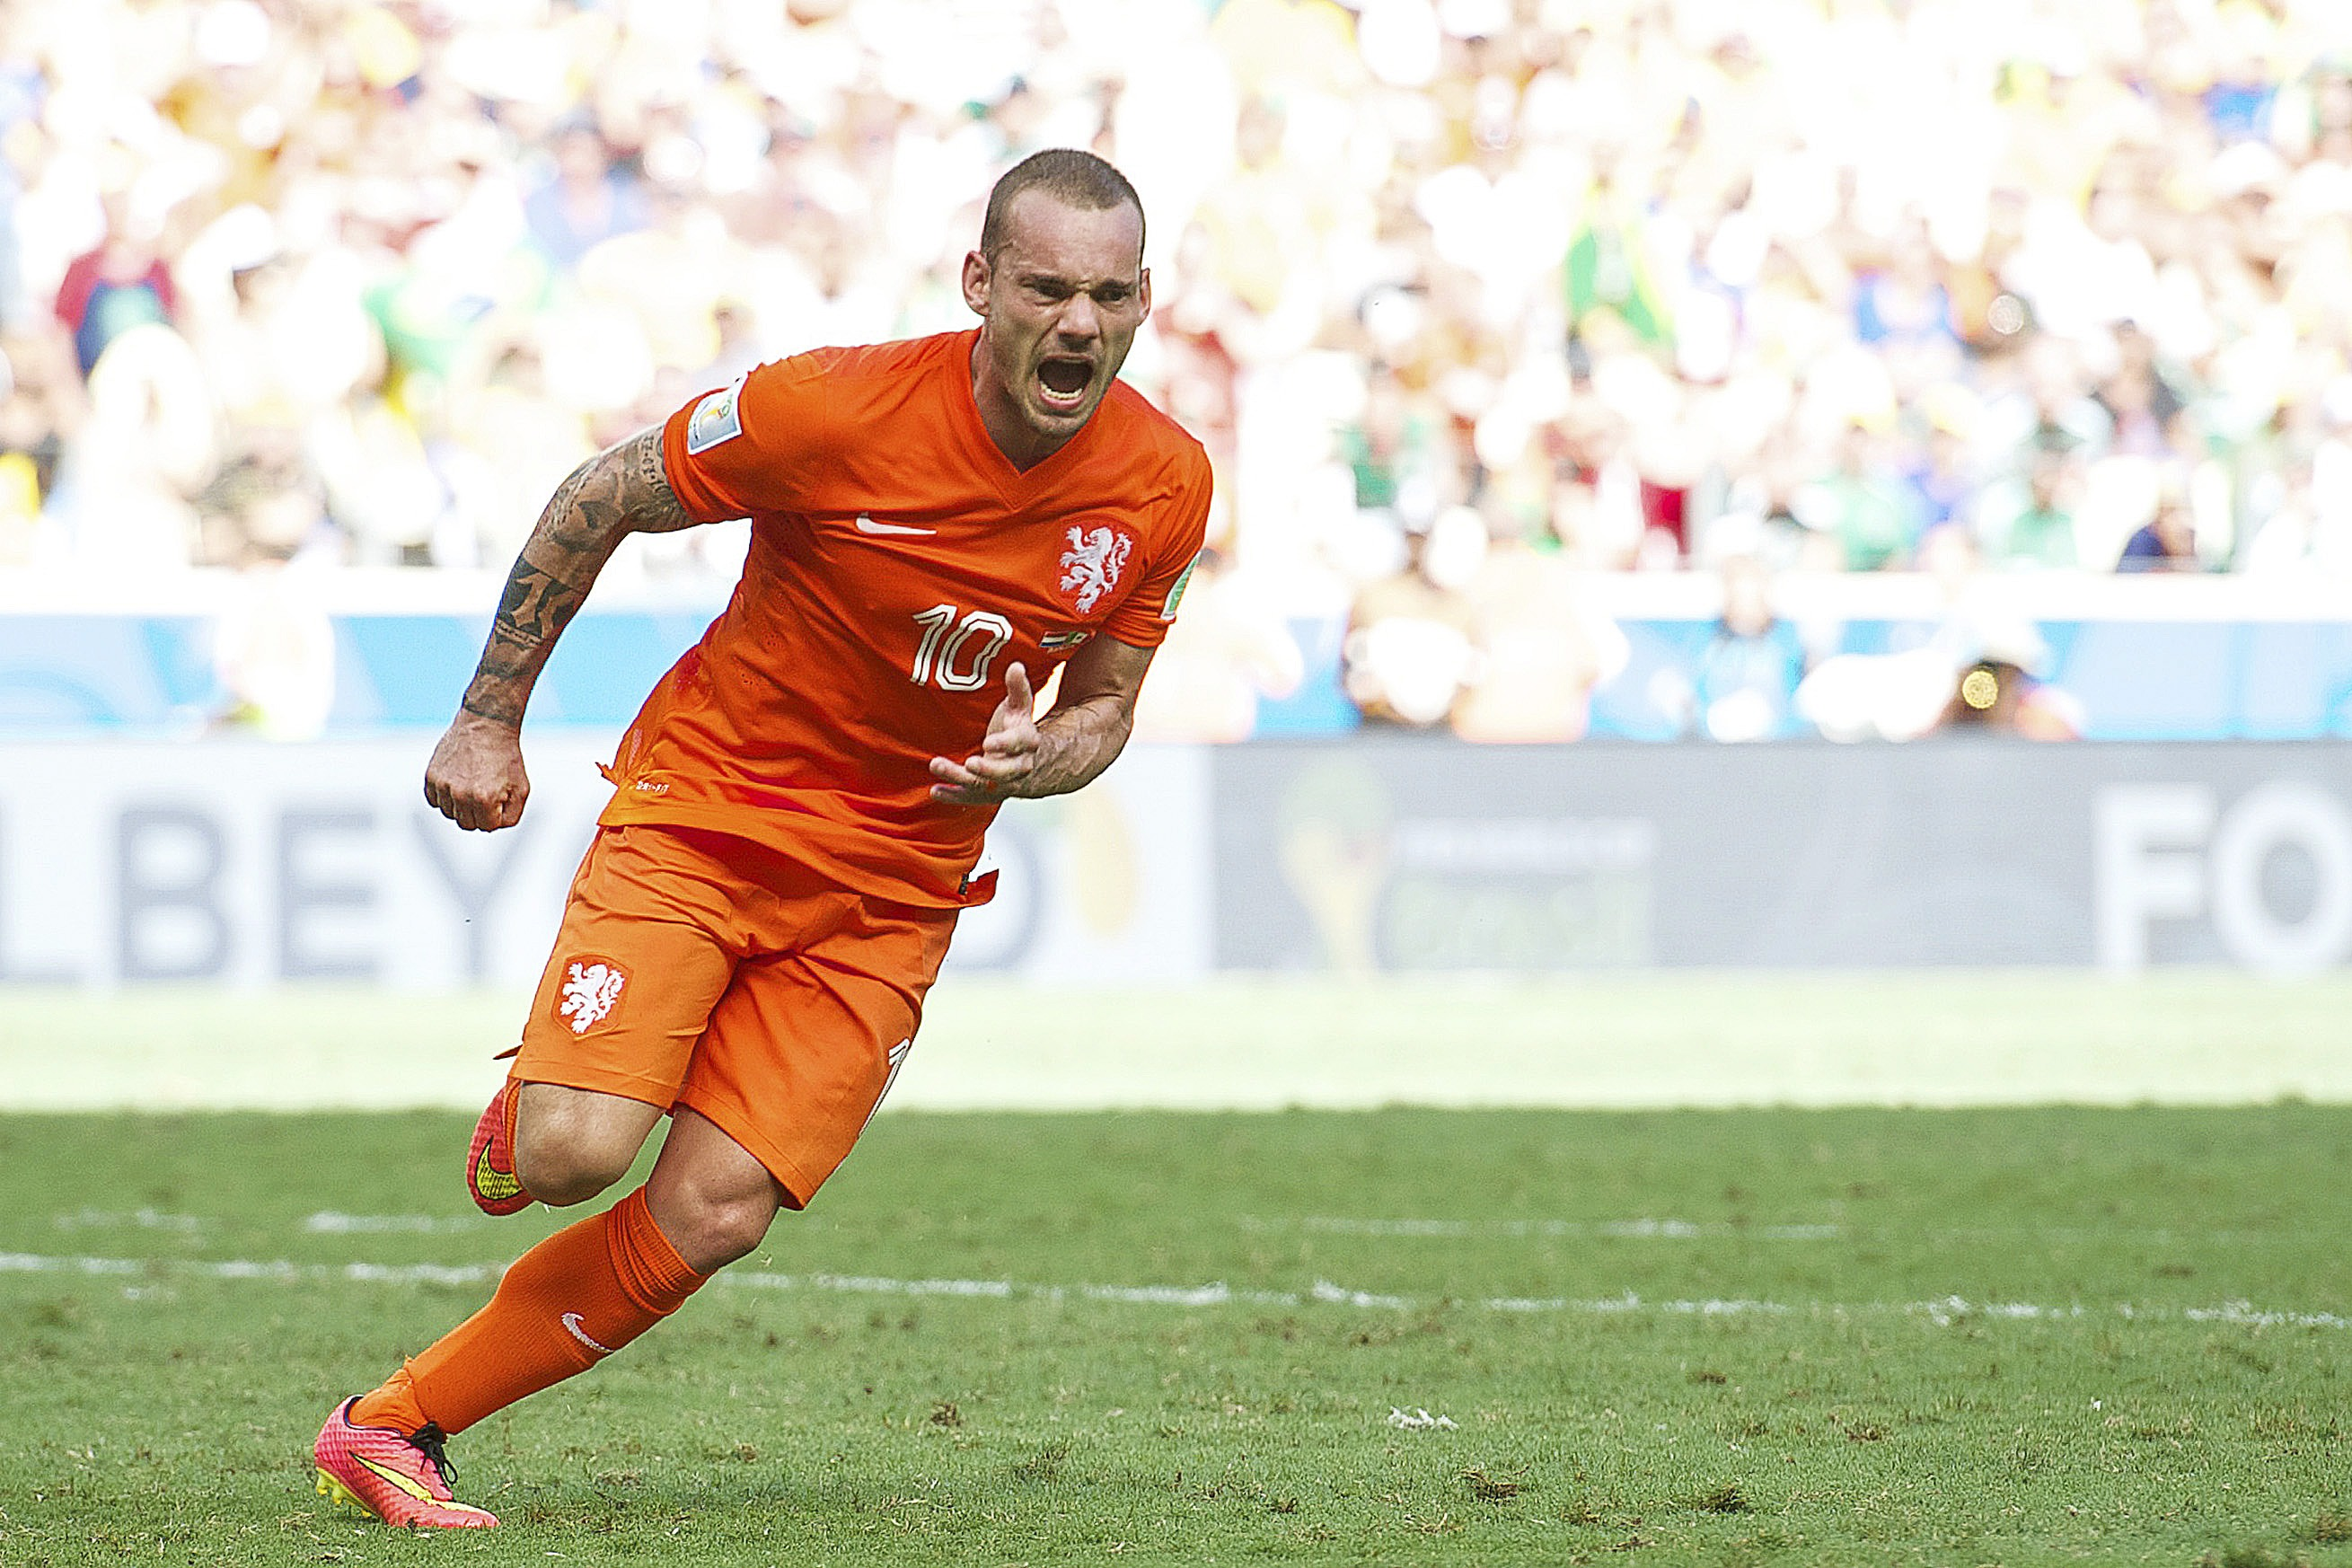 Wesley Sneijder of Holland during the 1/8 final match between The Netherlands and Mexico on June 29, 2014 at Estadio Castelao